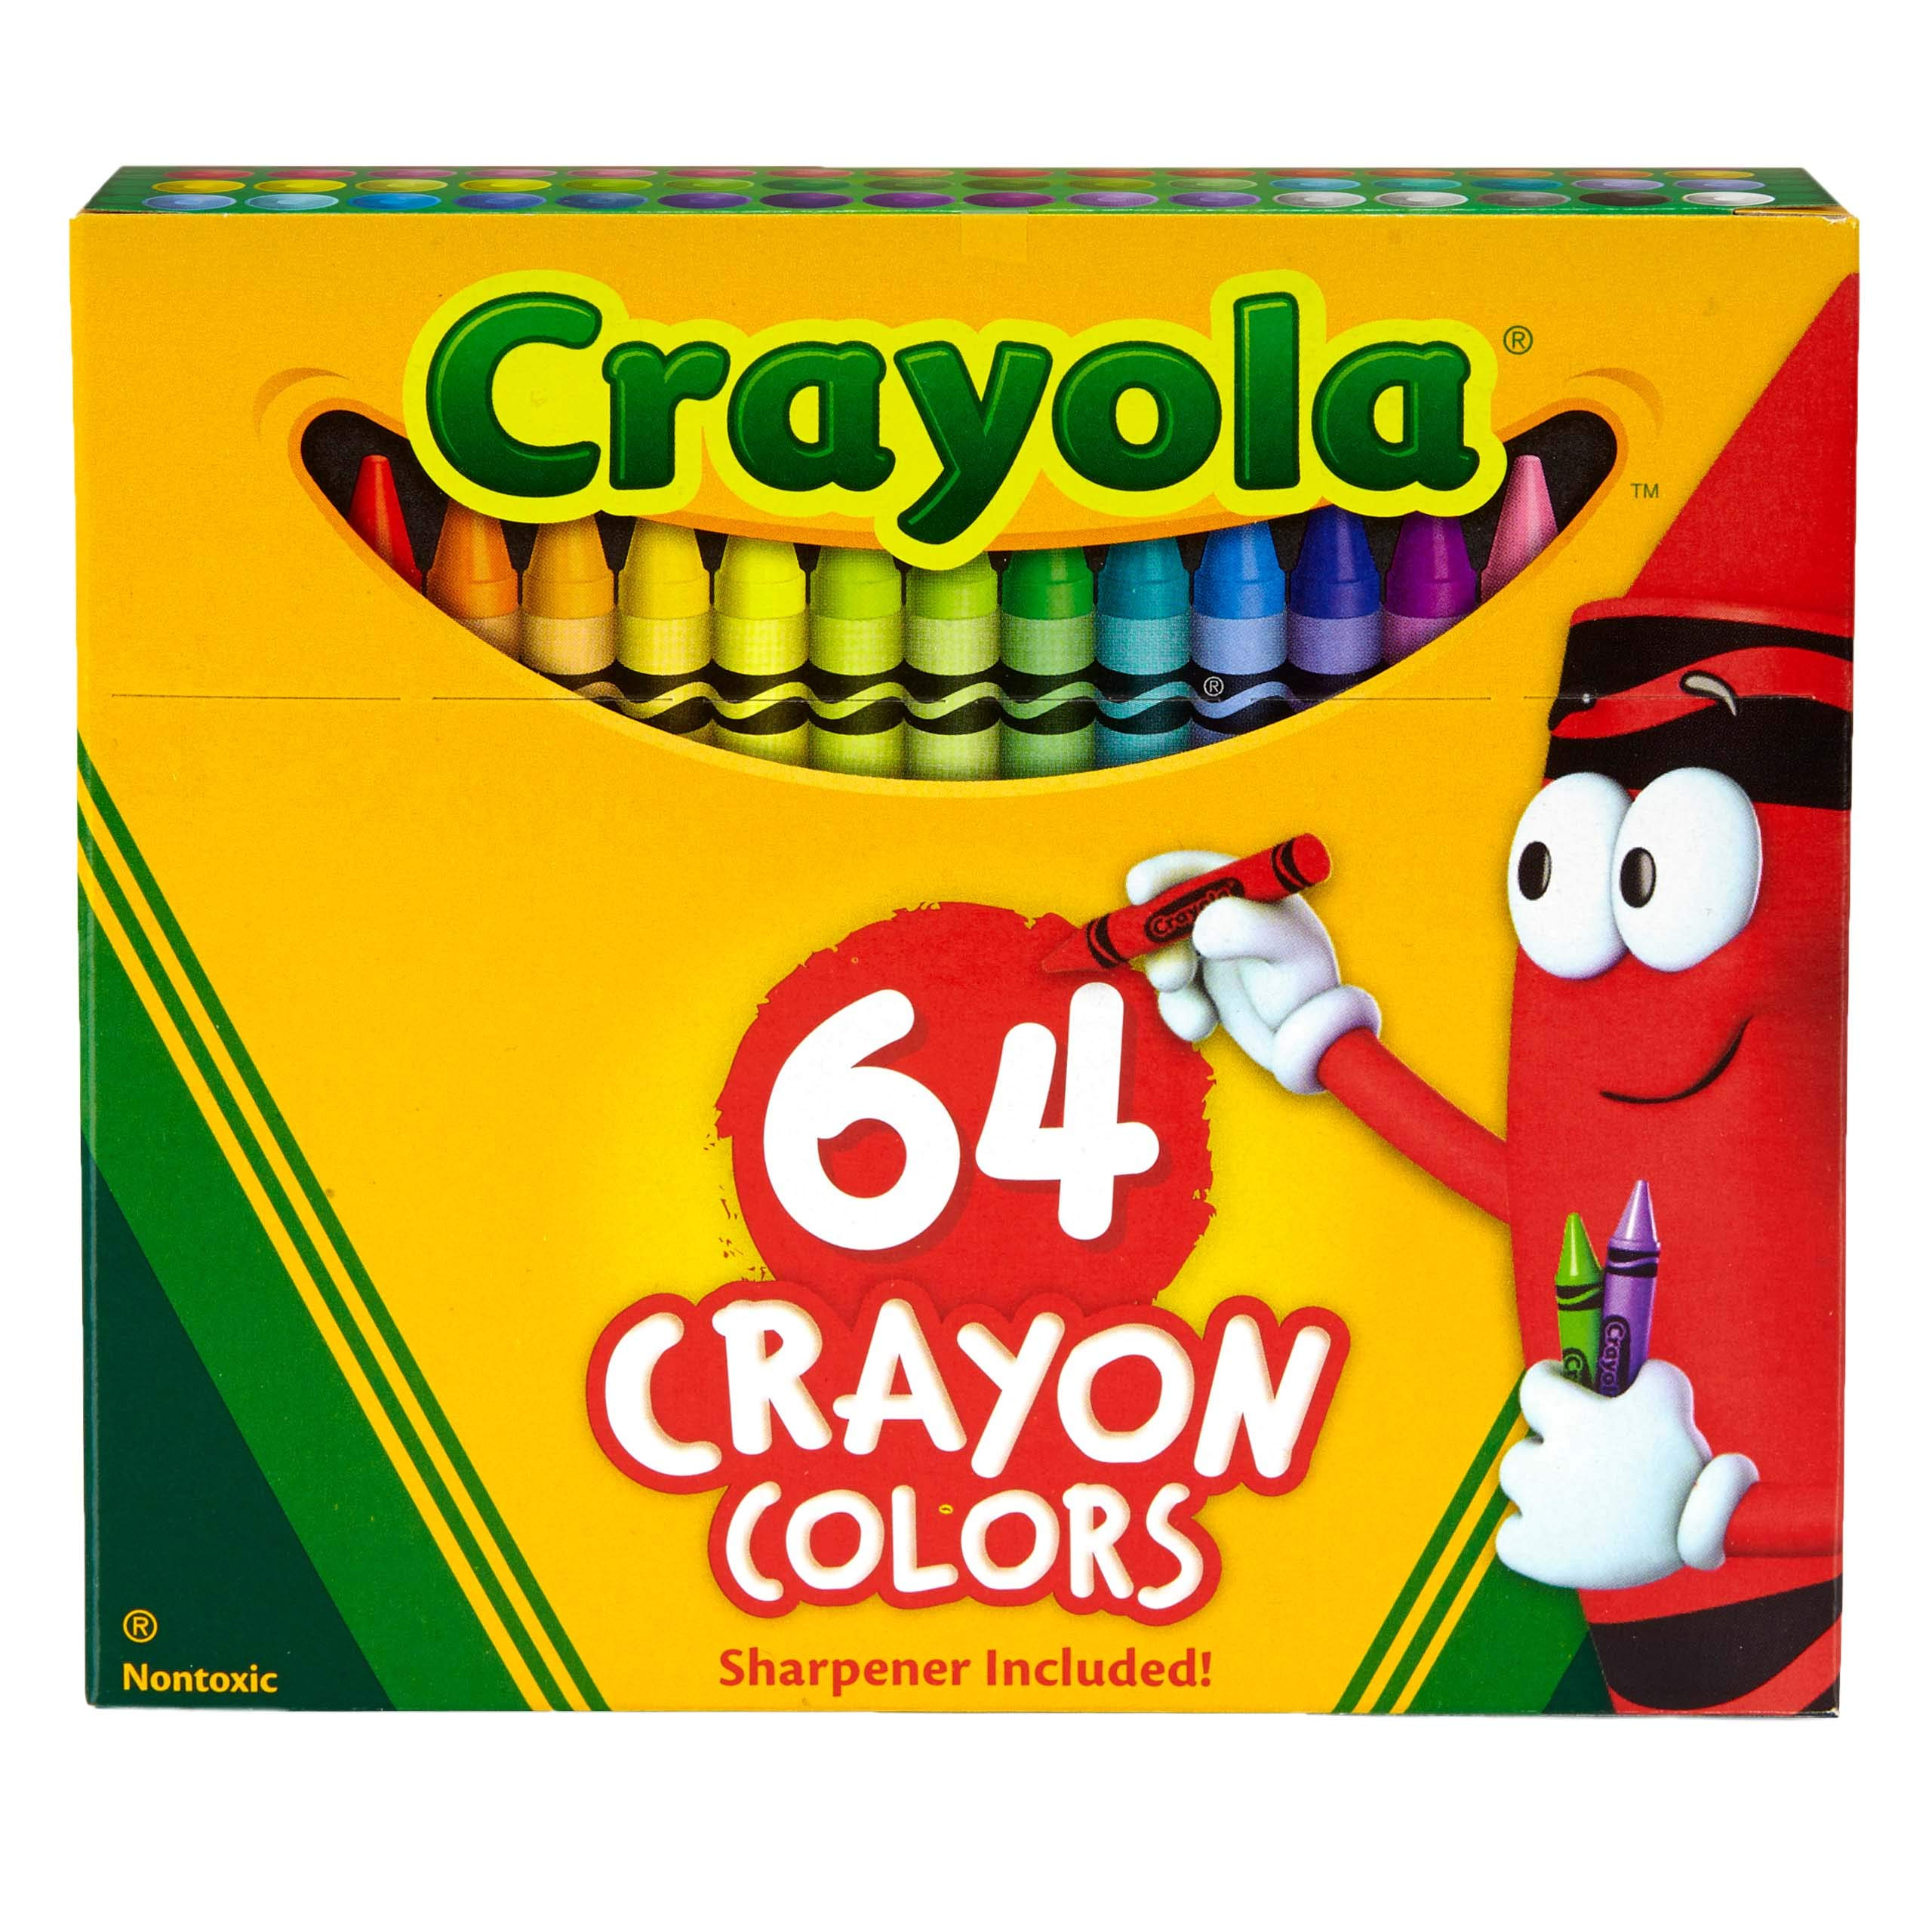 Crayola Crayons, Crayon Box with Sharpener, 64 ct